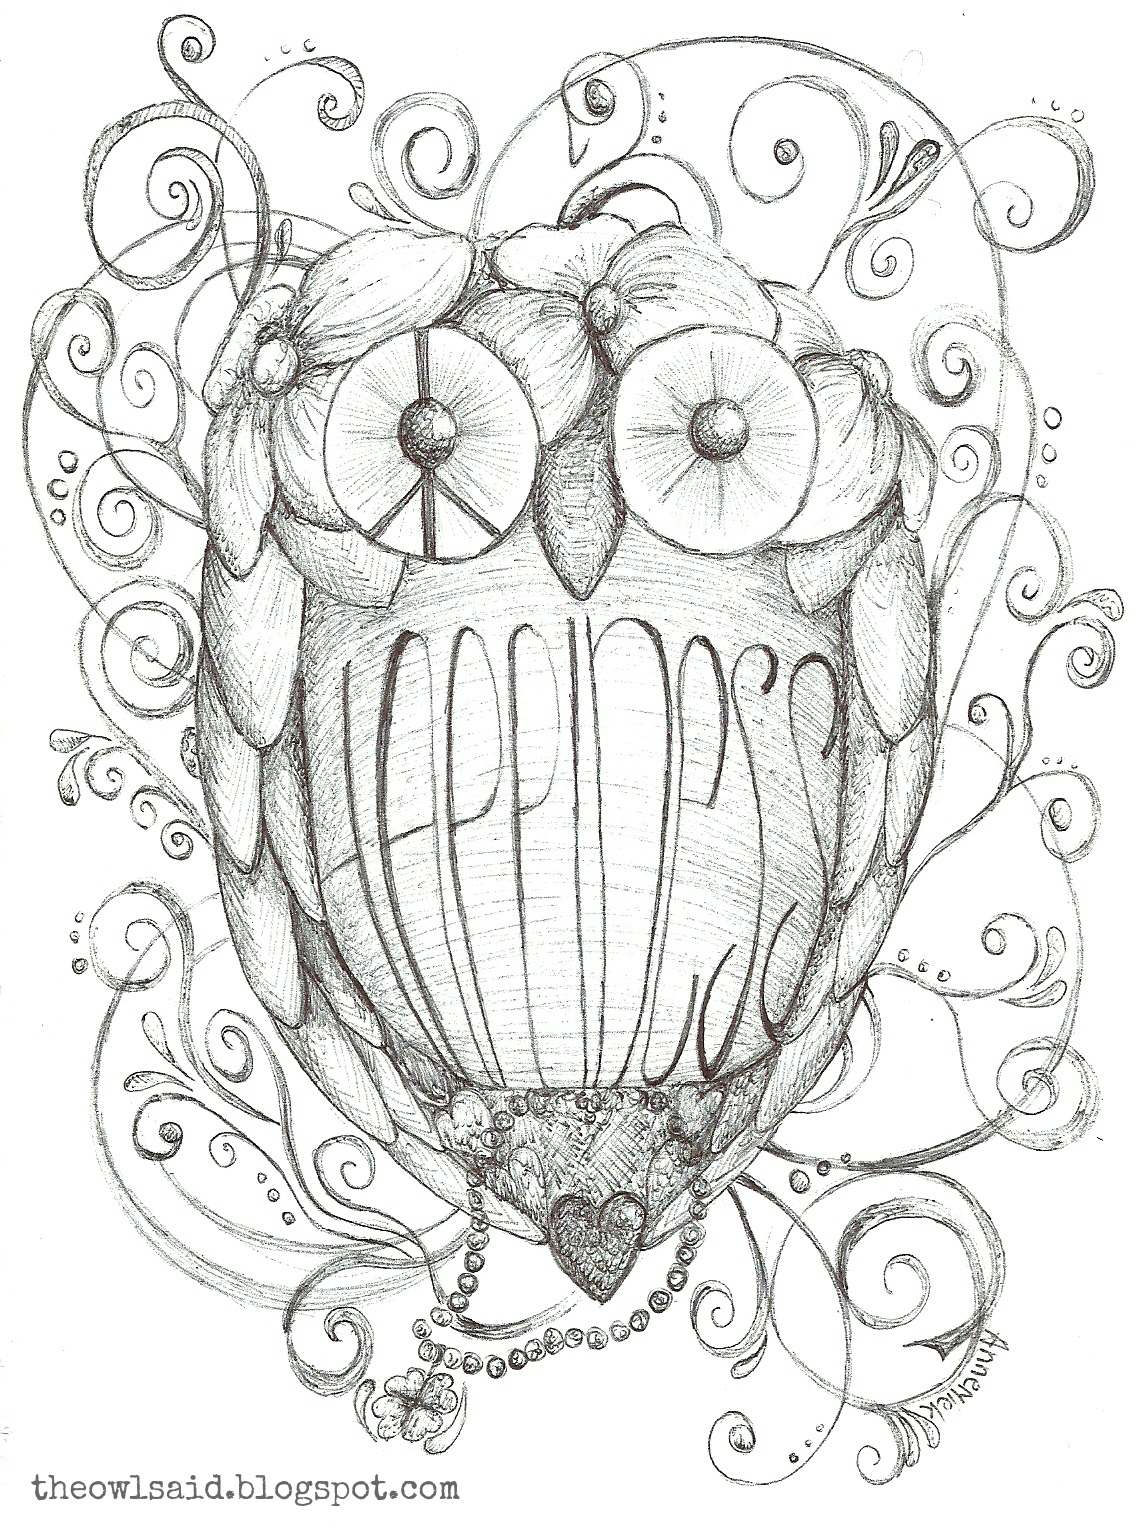 Free coloring pages of love peace happiness for Peace love happiness coloring pages